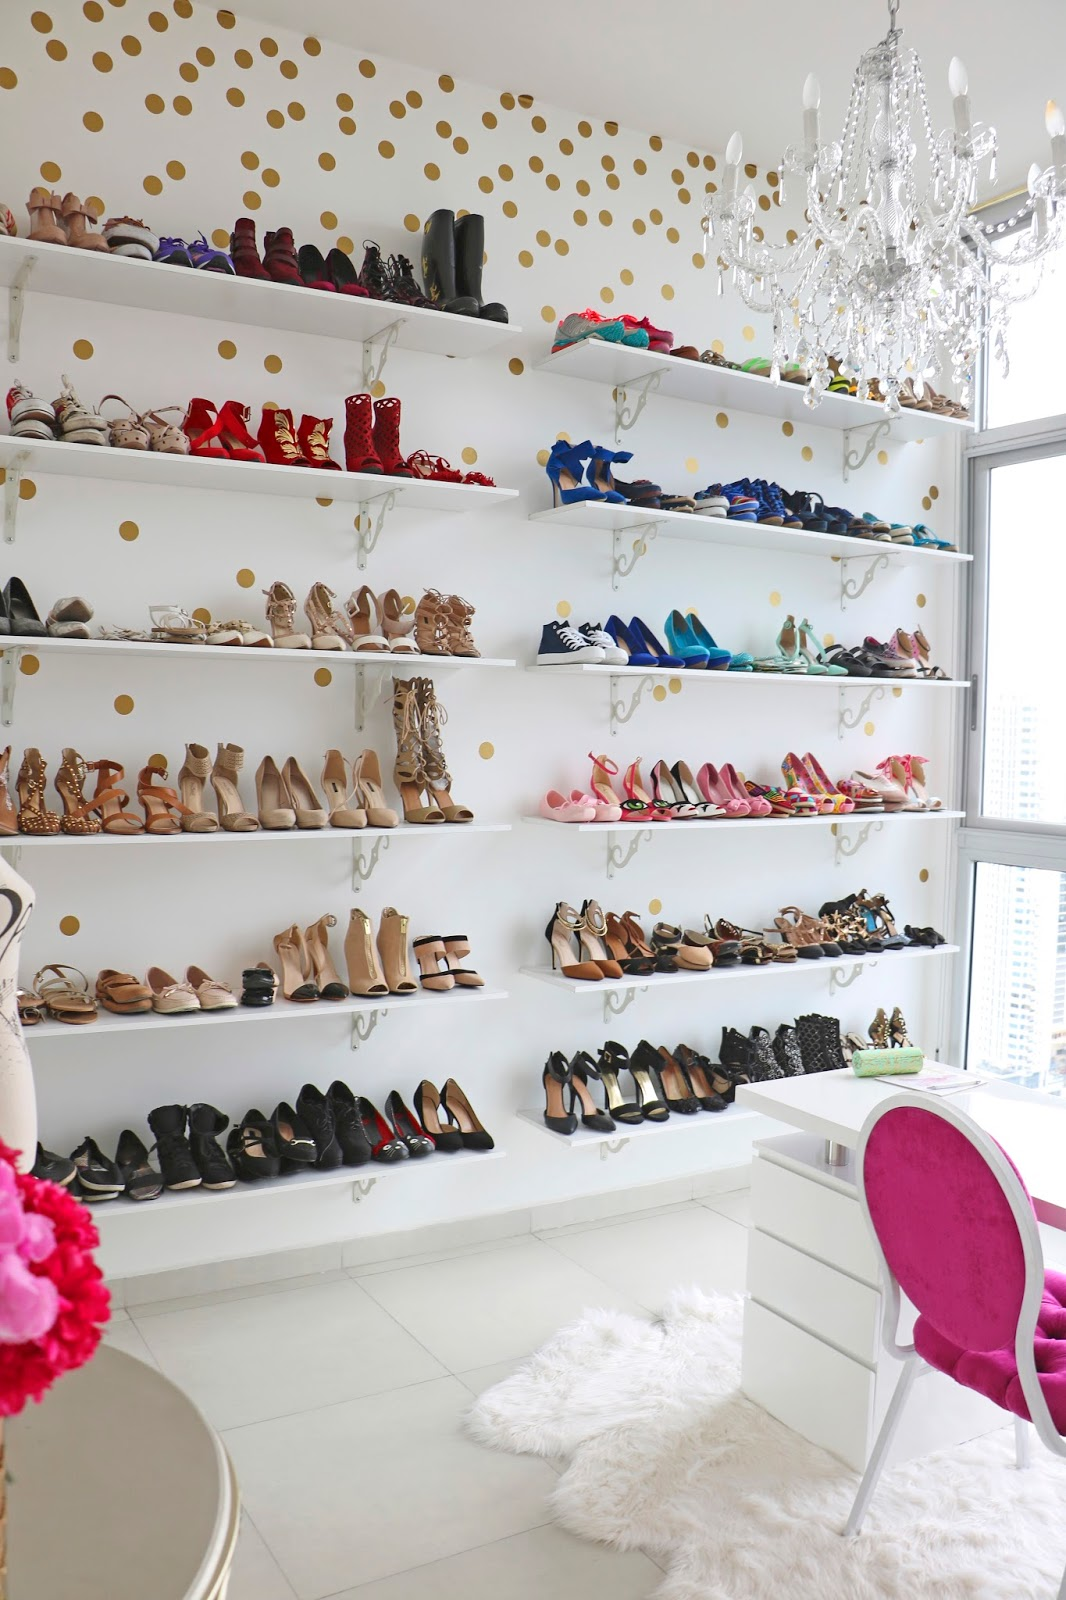 Display your shoes as art covering an entire wall!